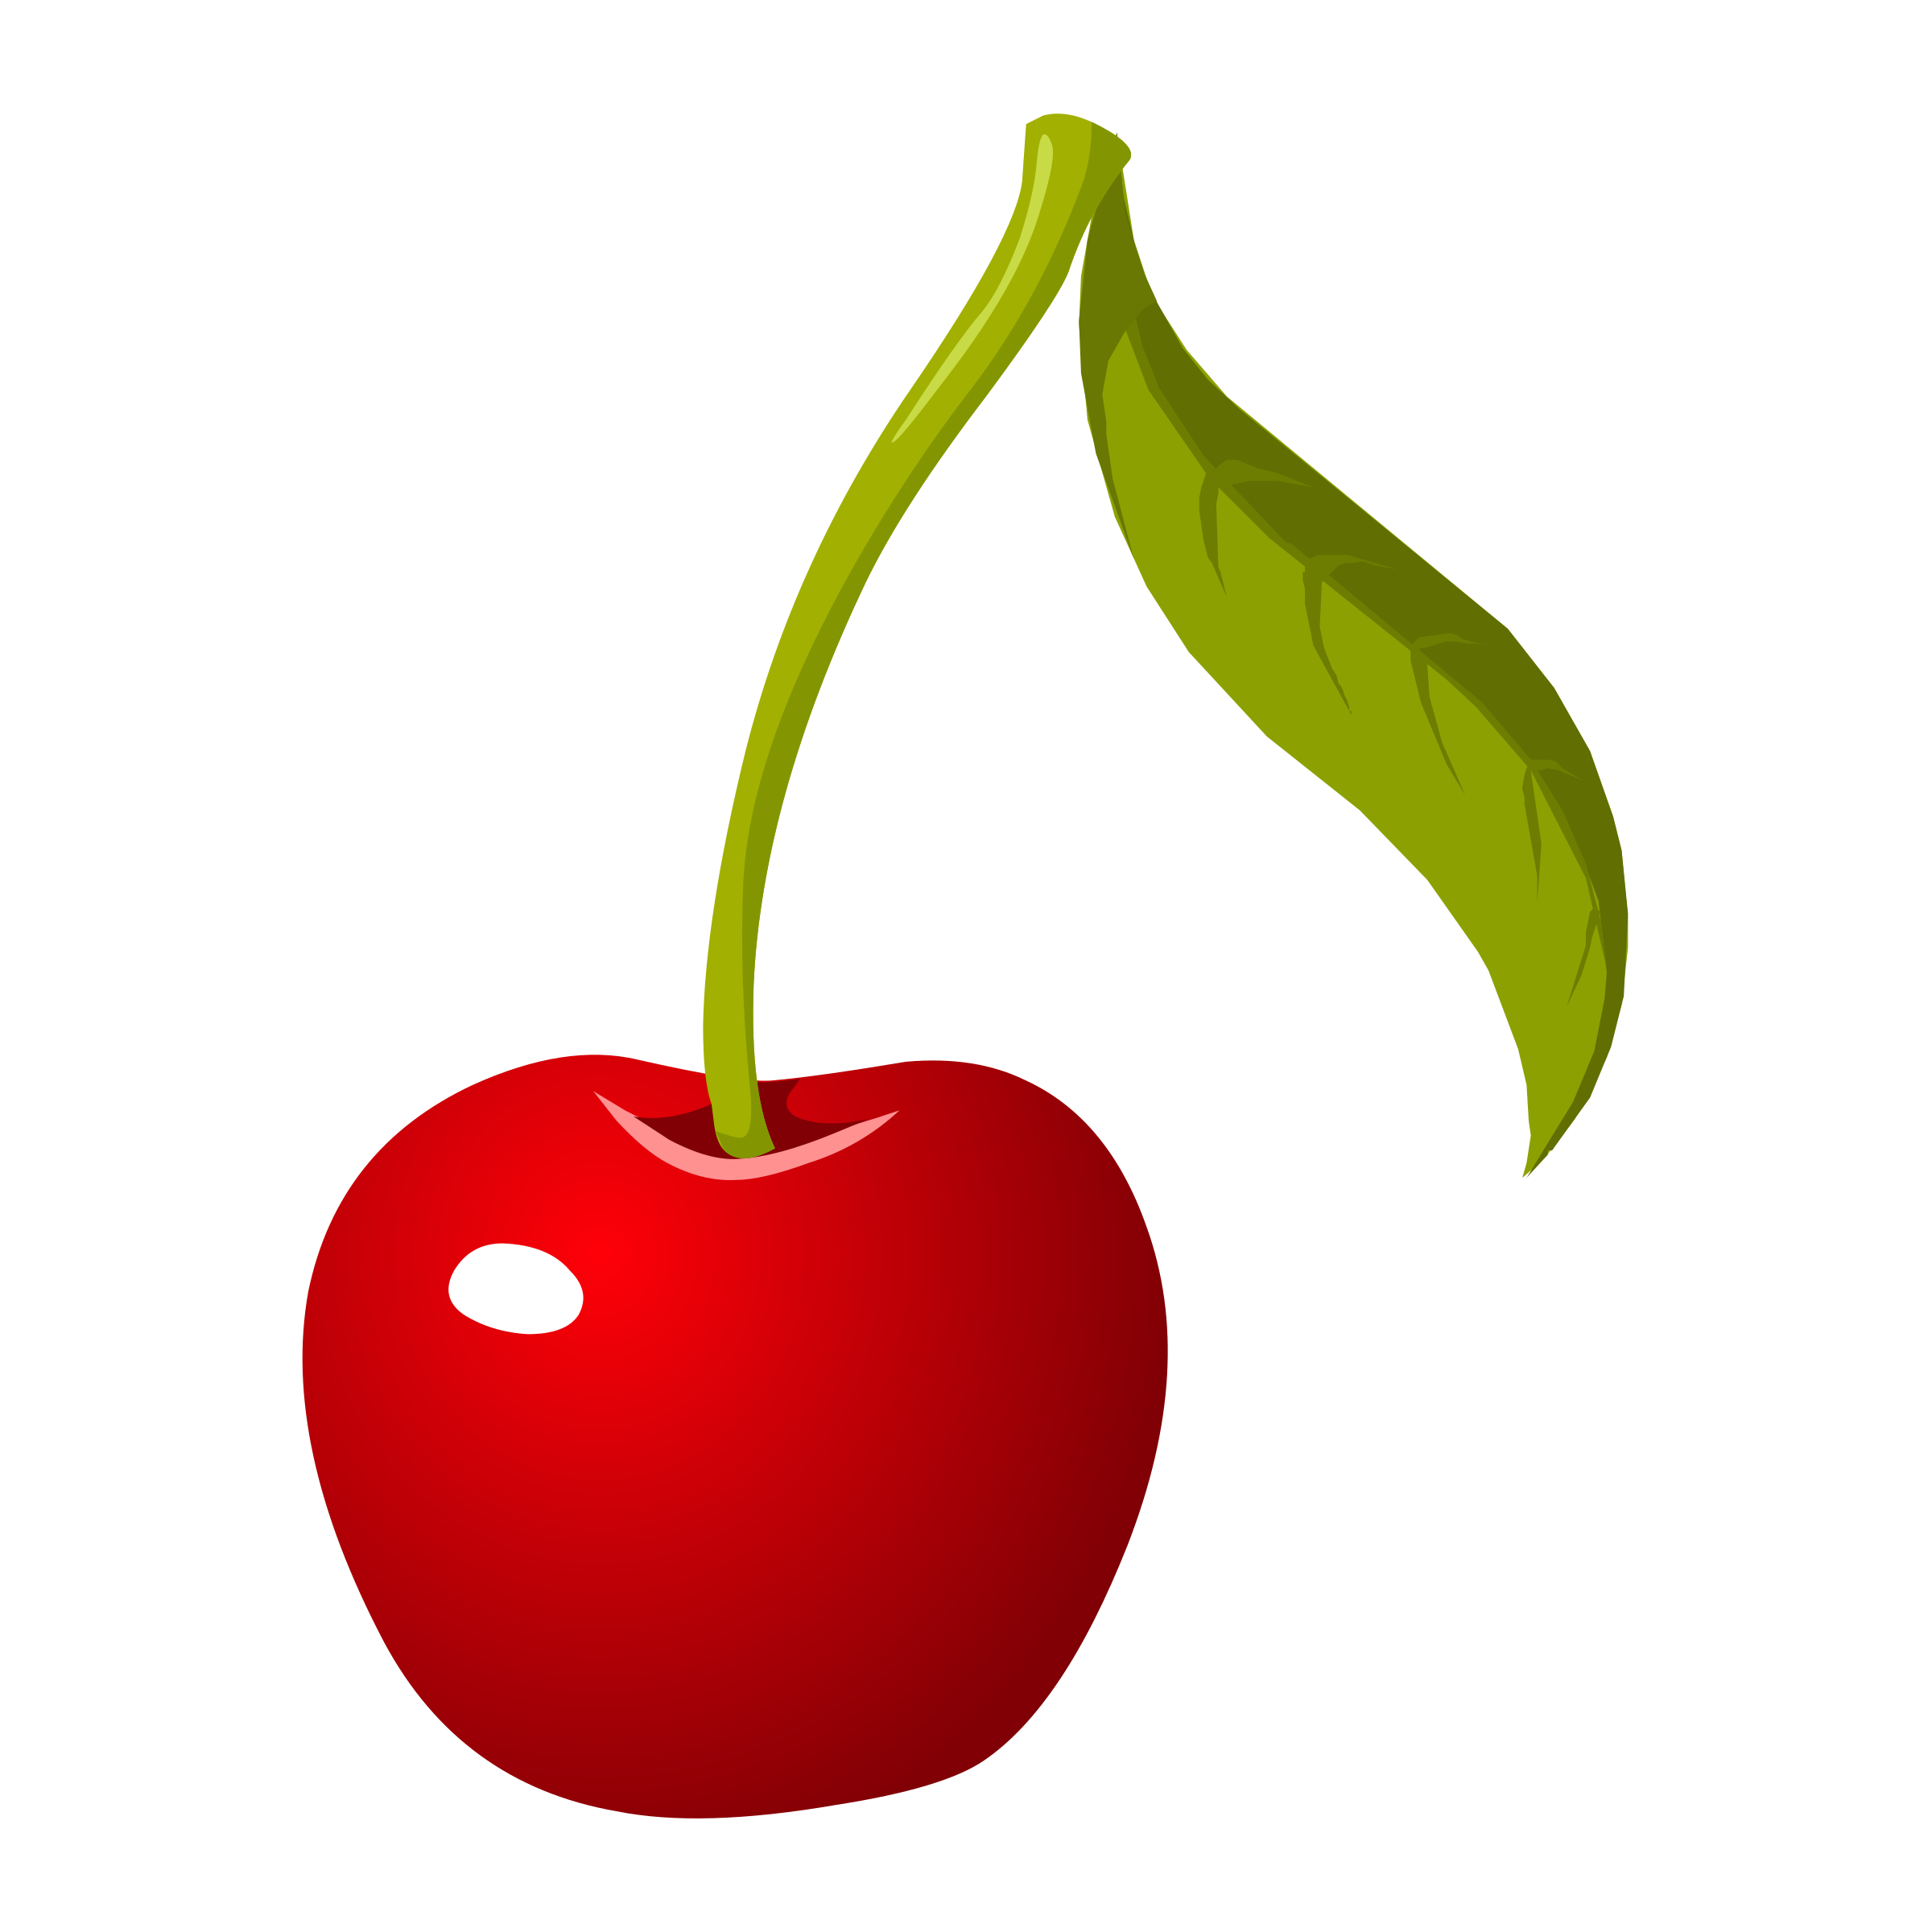 Food cherry icons png. Foods clipart tree